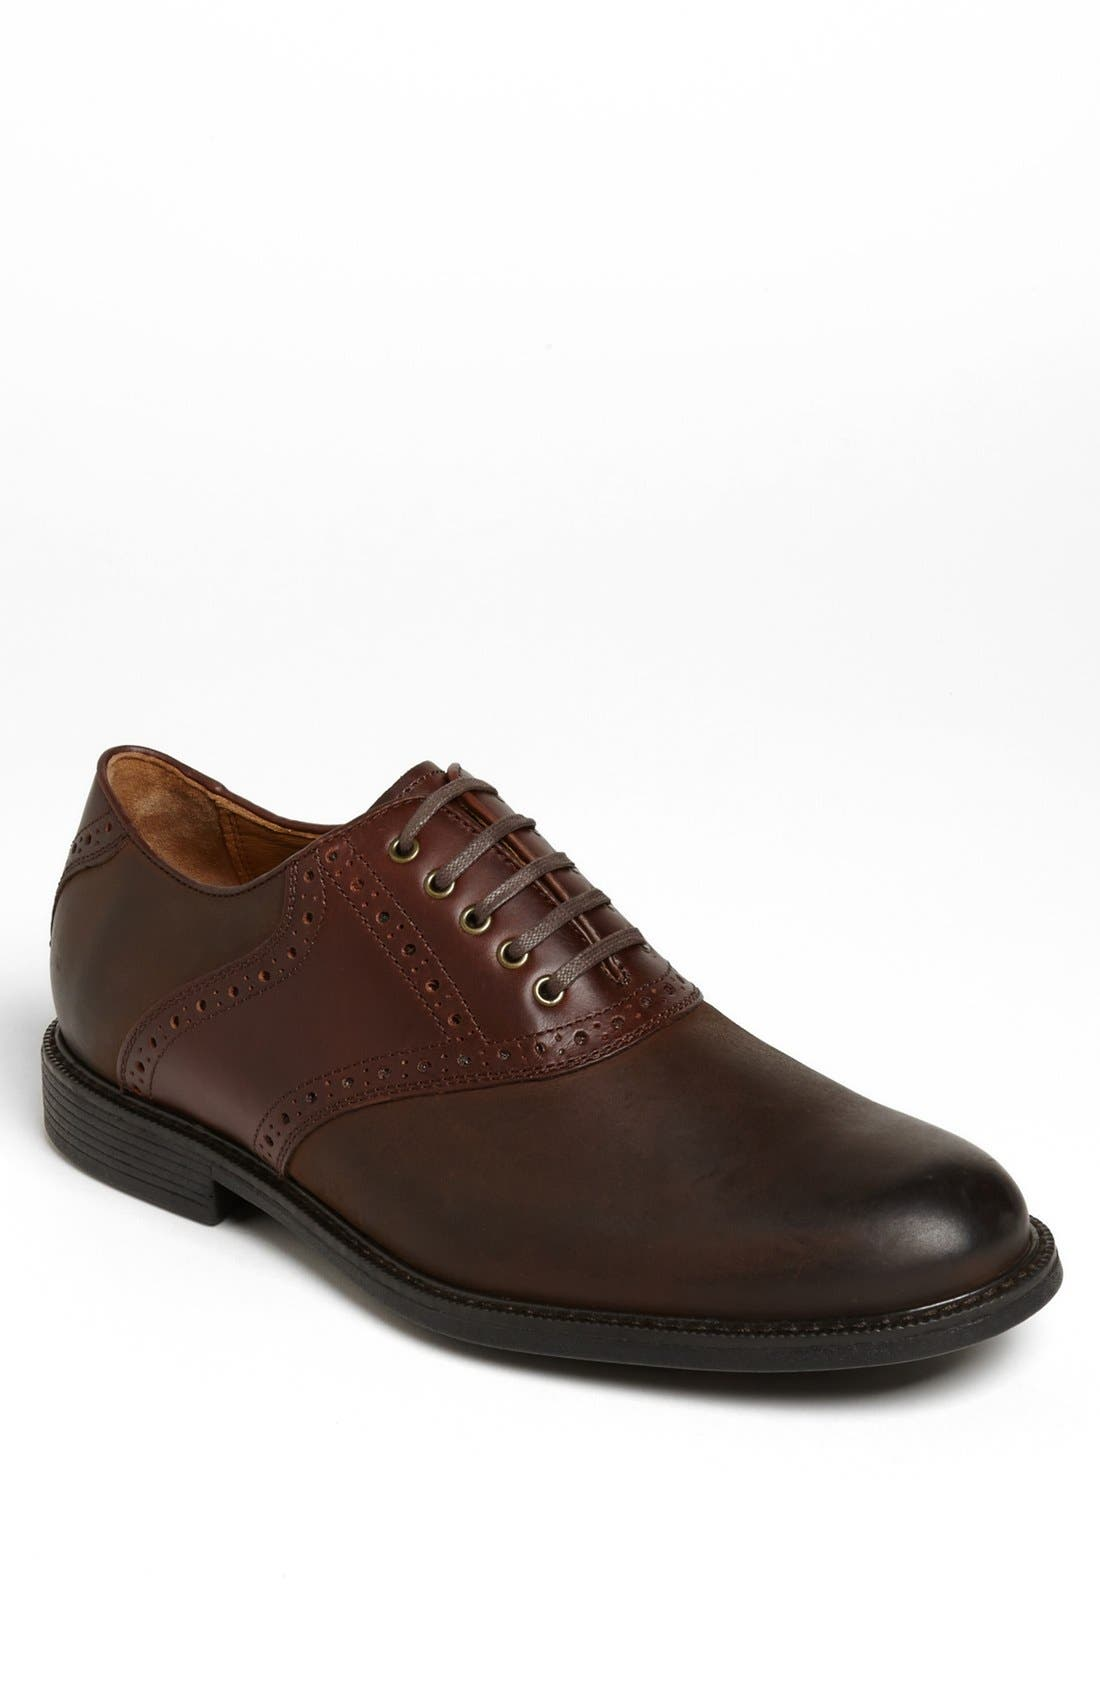 Main Image - Johnston & Murphy 'Cardell' Waterproof Saddle Oxford (Men)